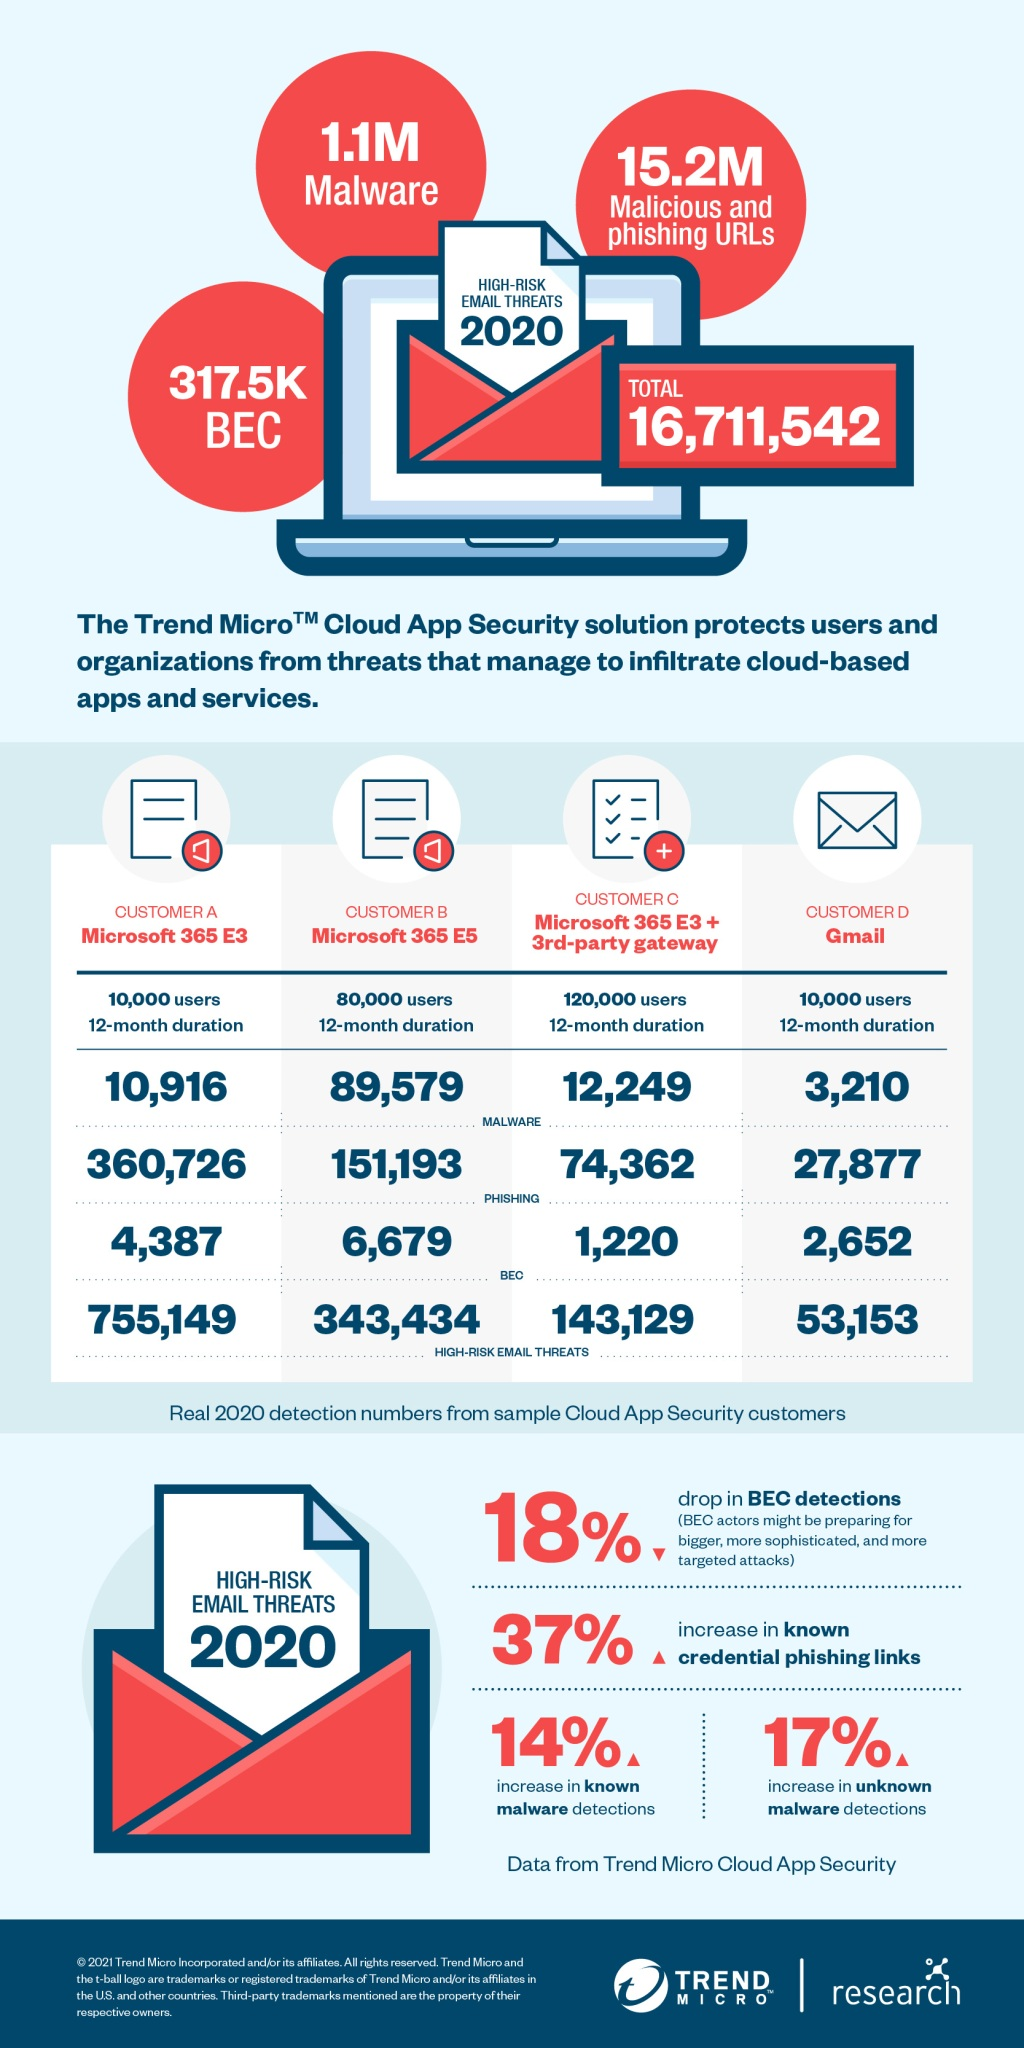 Trend Micro: Remote work drove high-risk email threats up 32% in 2020 Trend Micro Cloud App Security Threat Report 2020